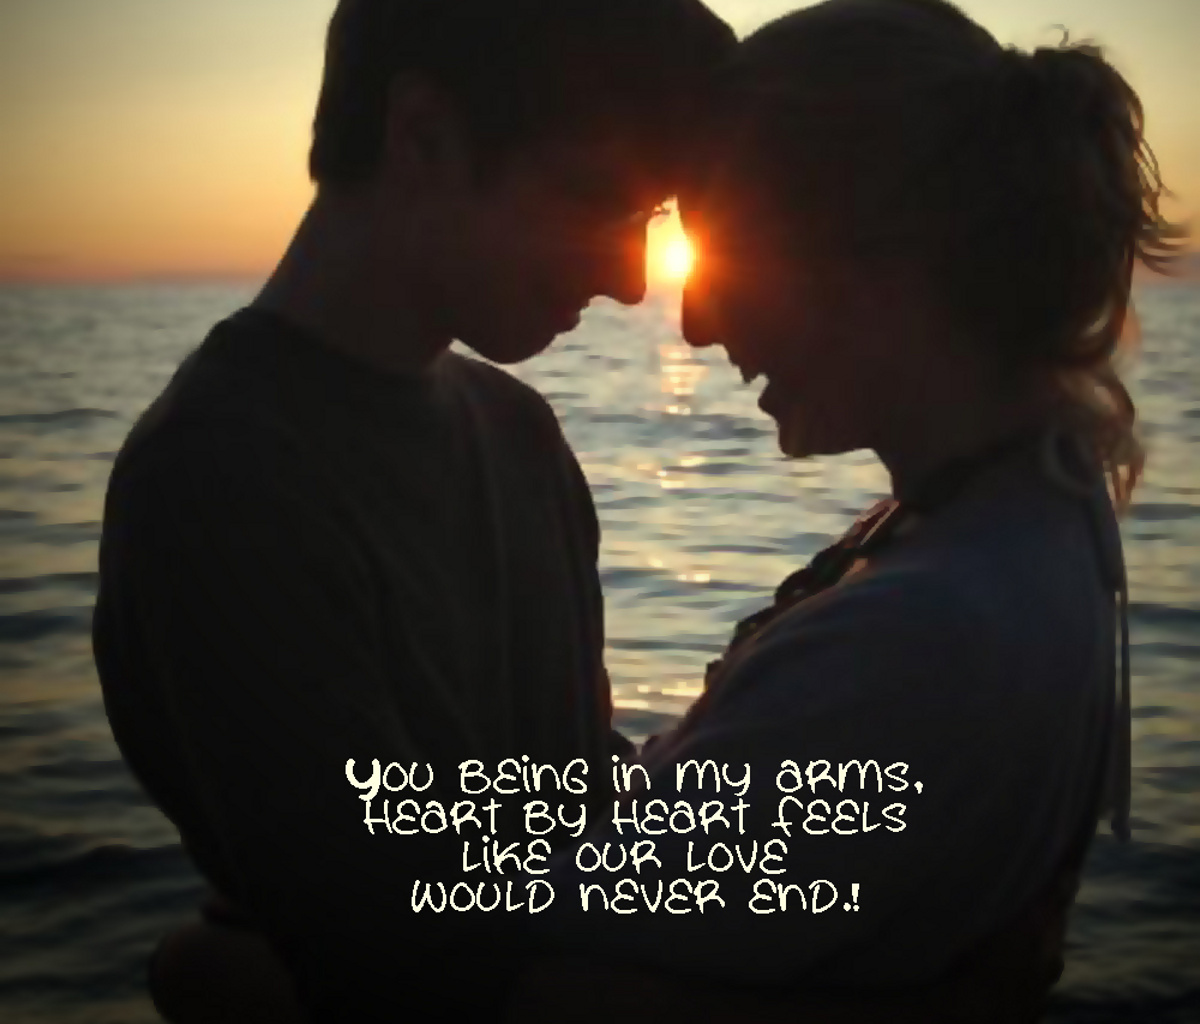 Hd Wallpapers Of Love Couples With Quotes Need You Like A Heart